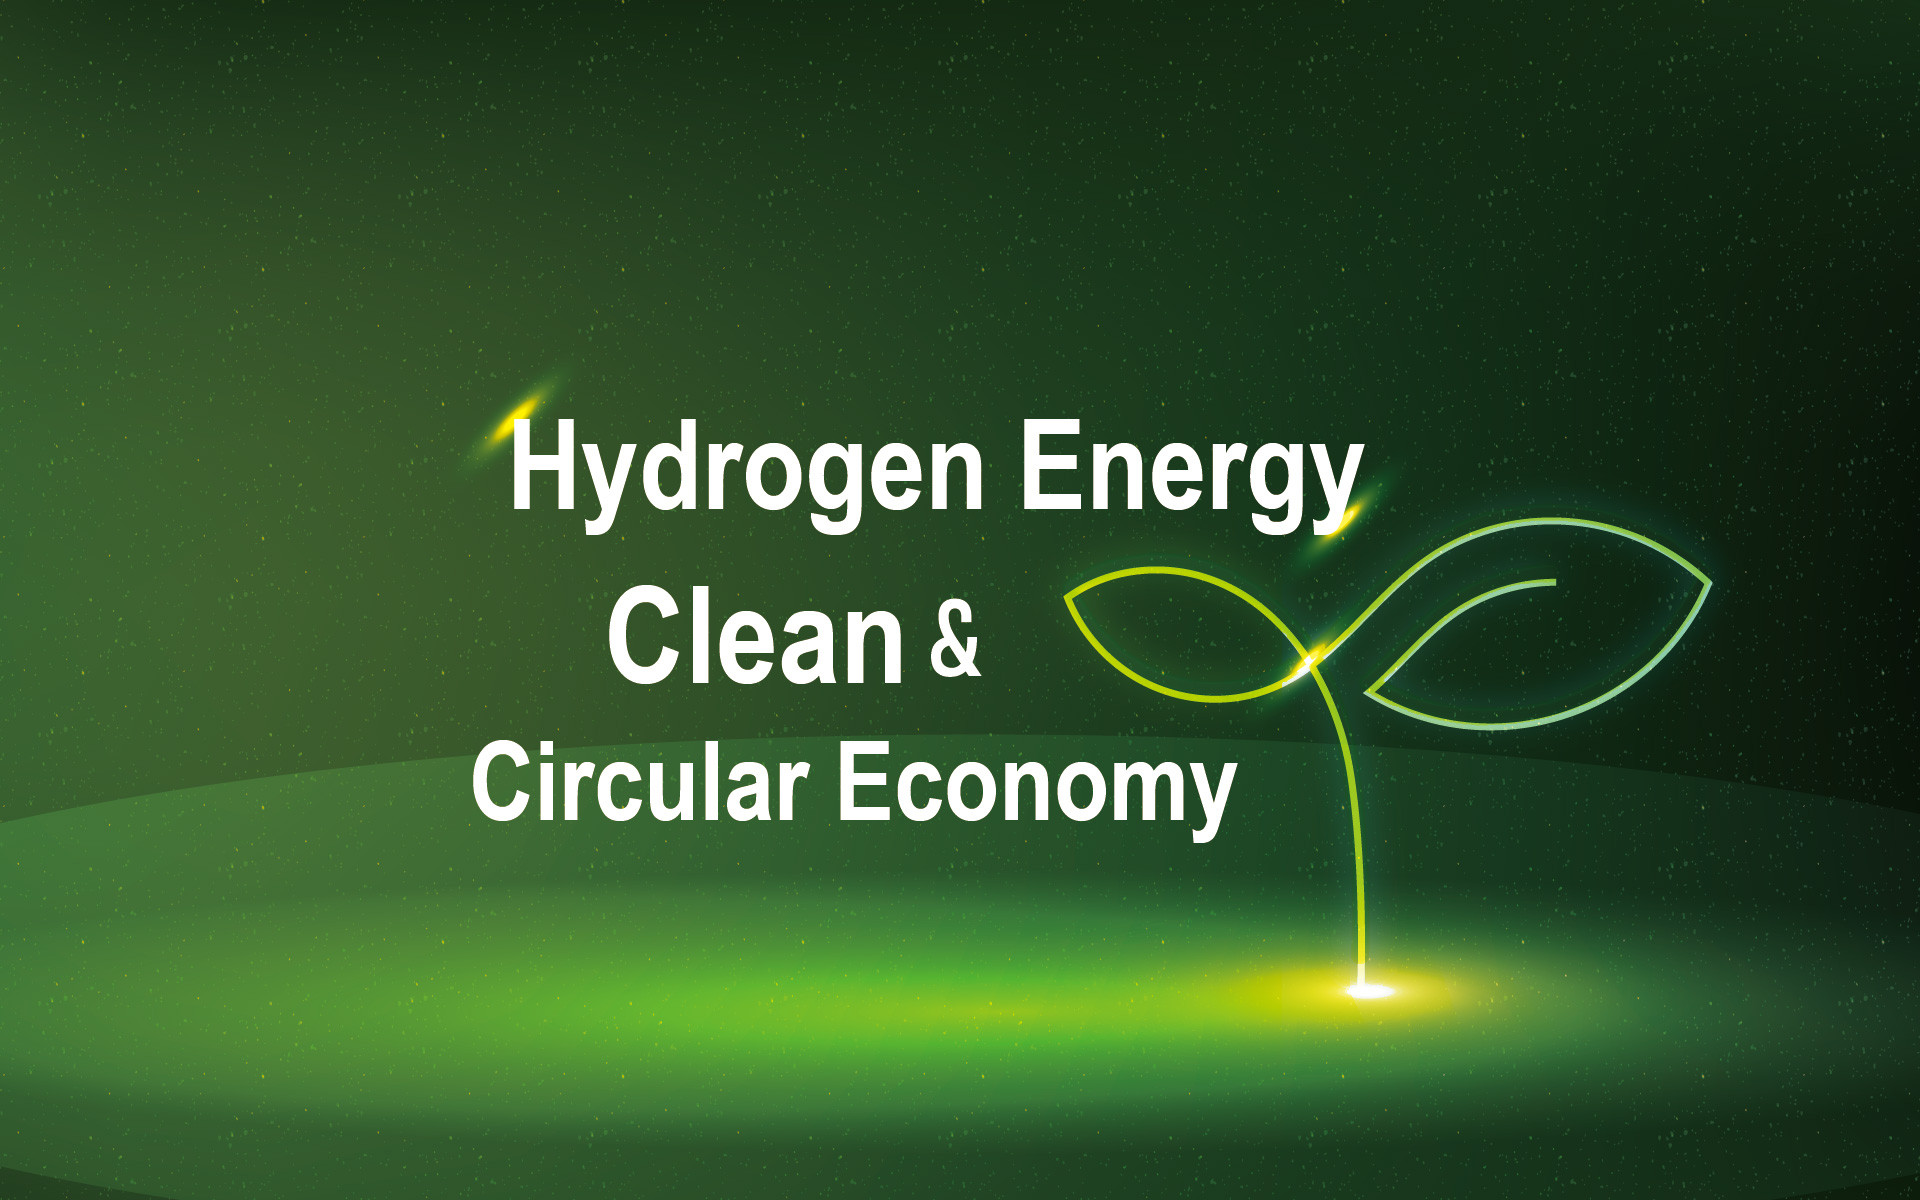 Hydrogen Is A Priority Area For A Clean And Circular Economy